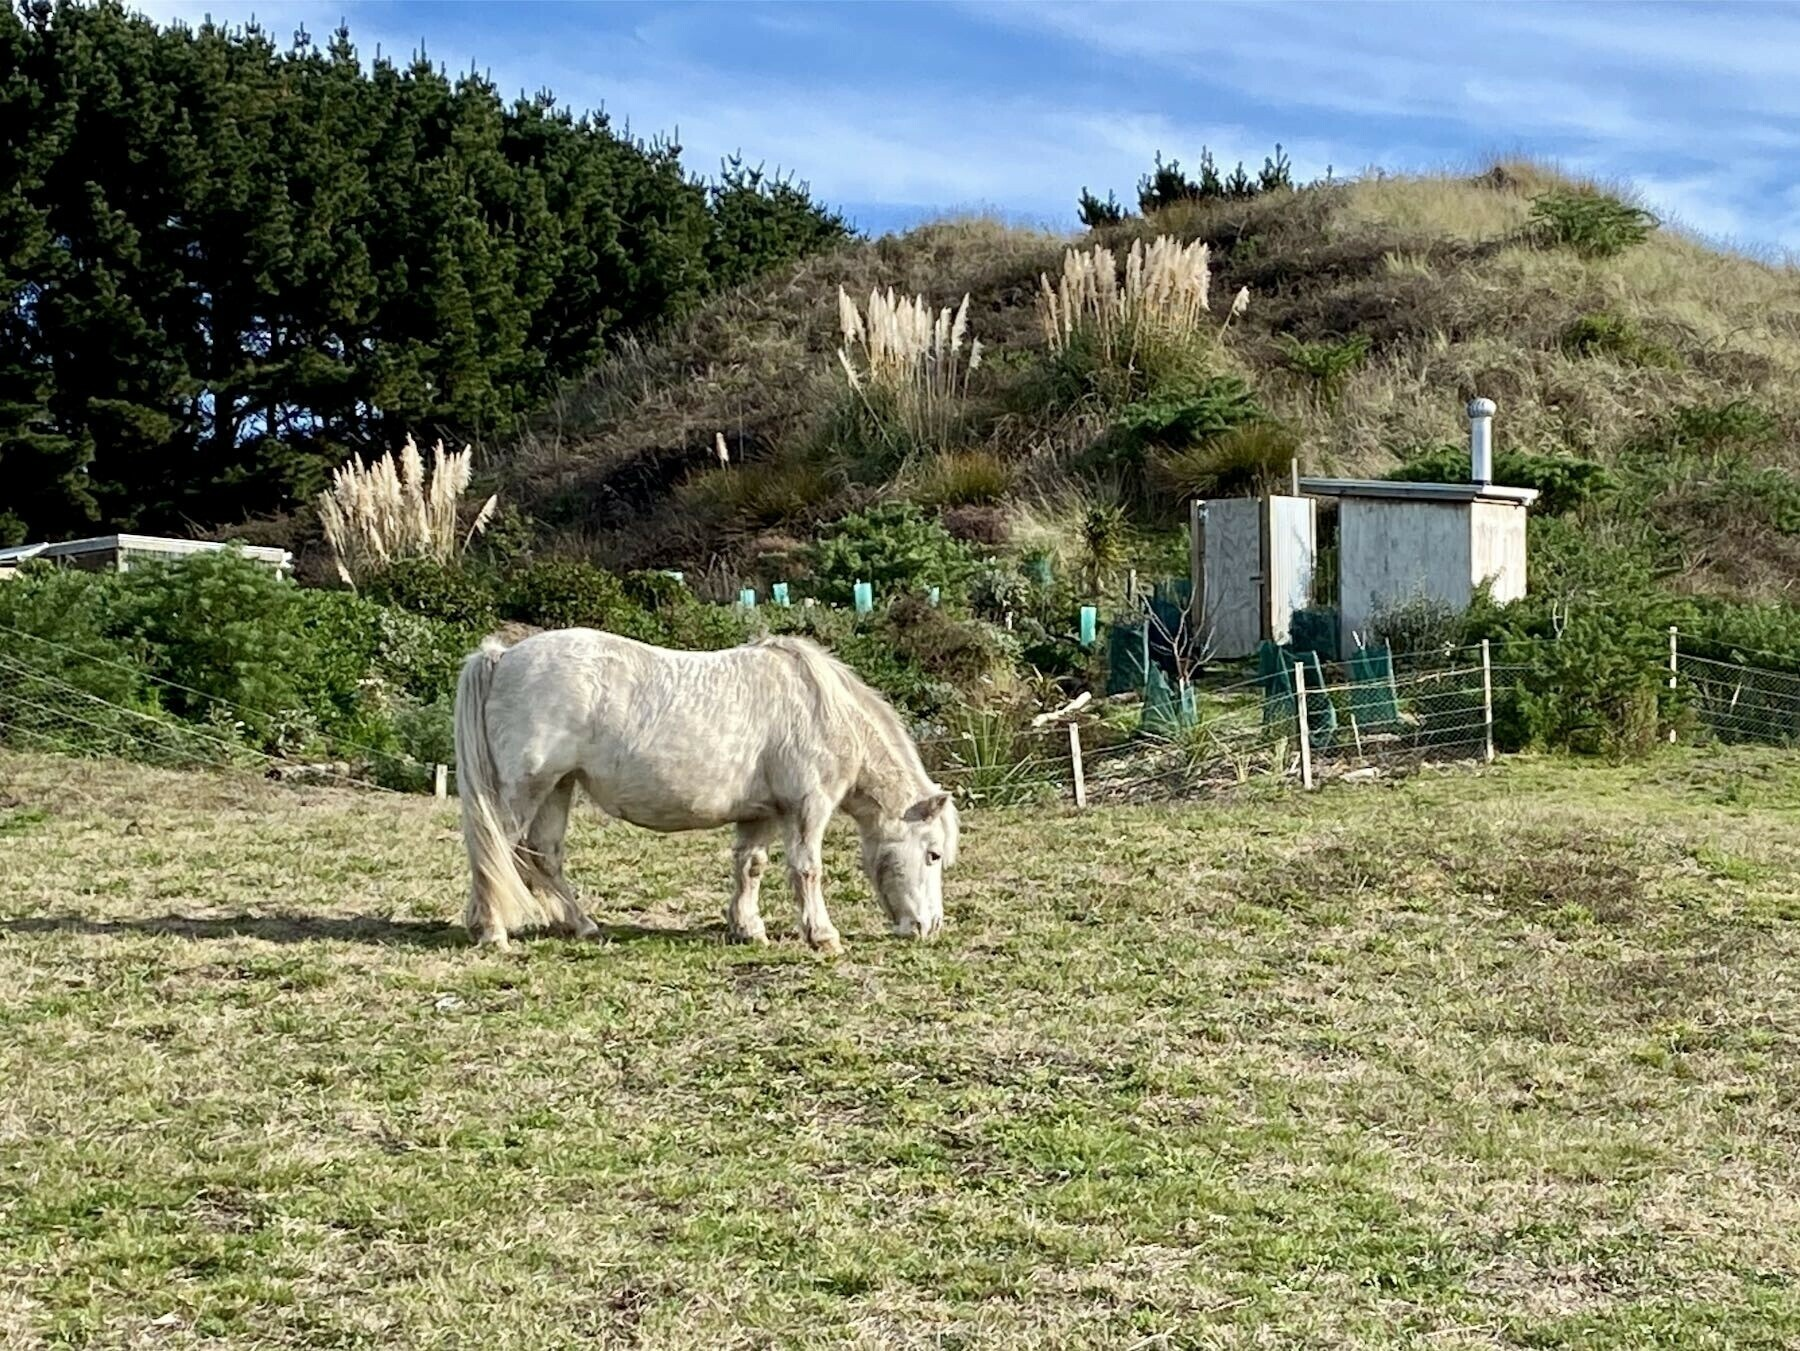 White miniature horse grazing in a paddock.